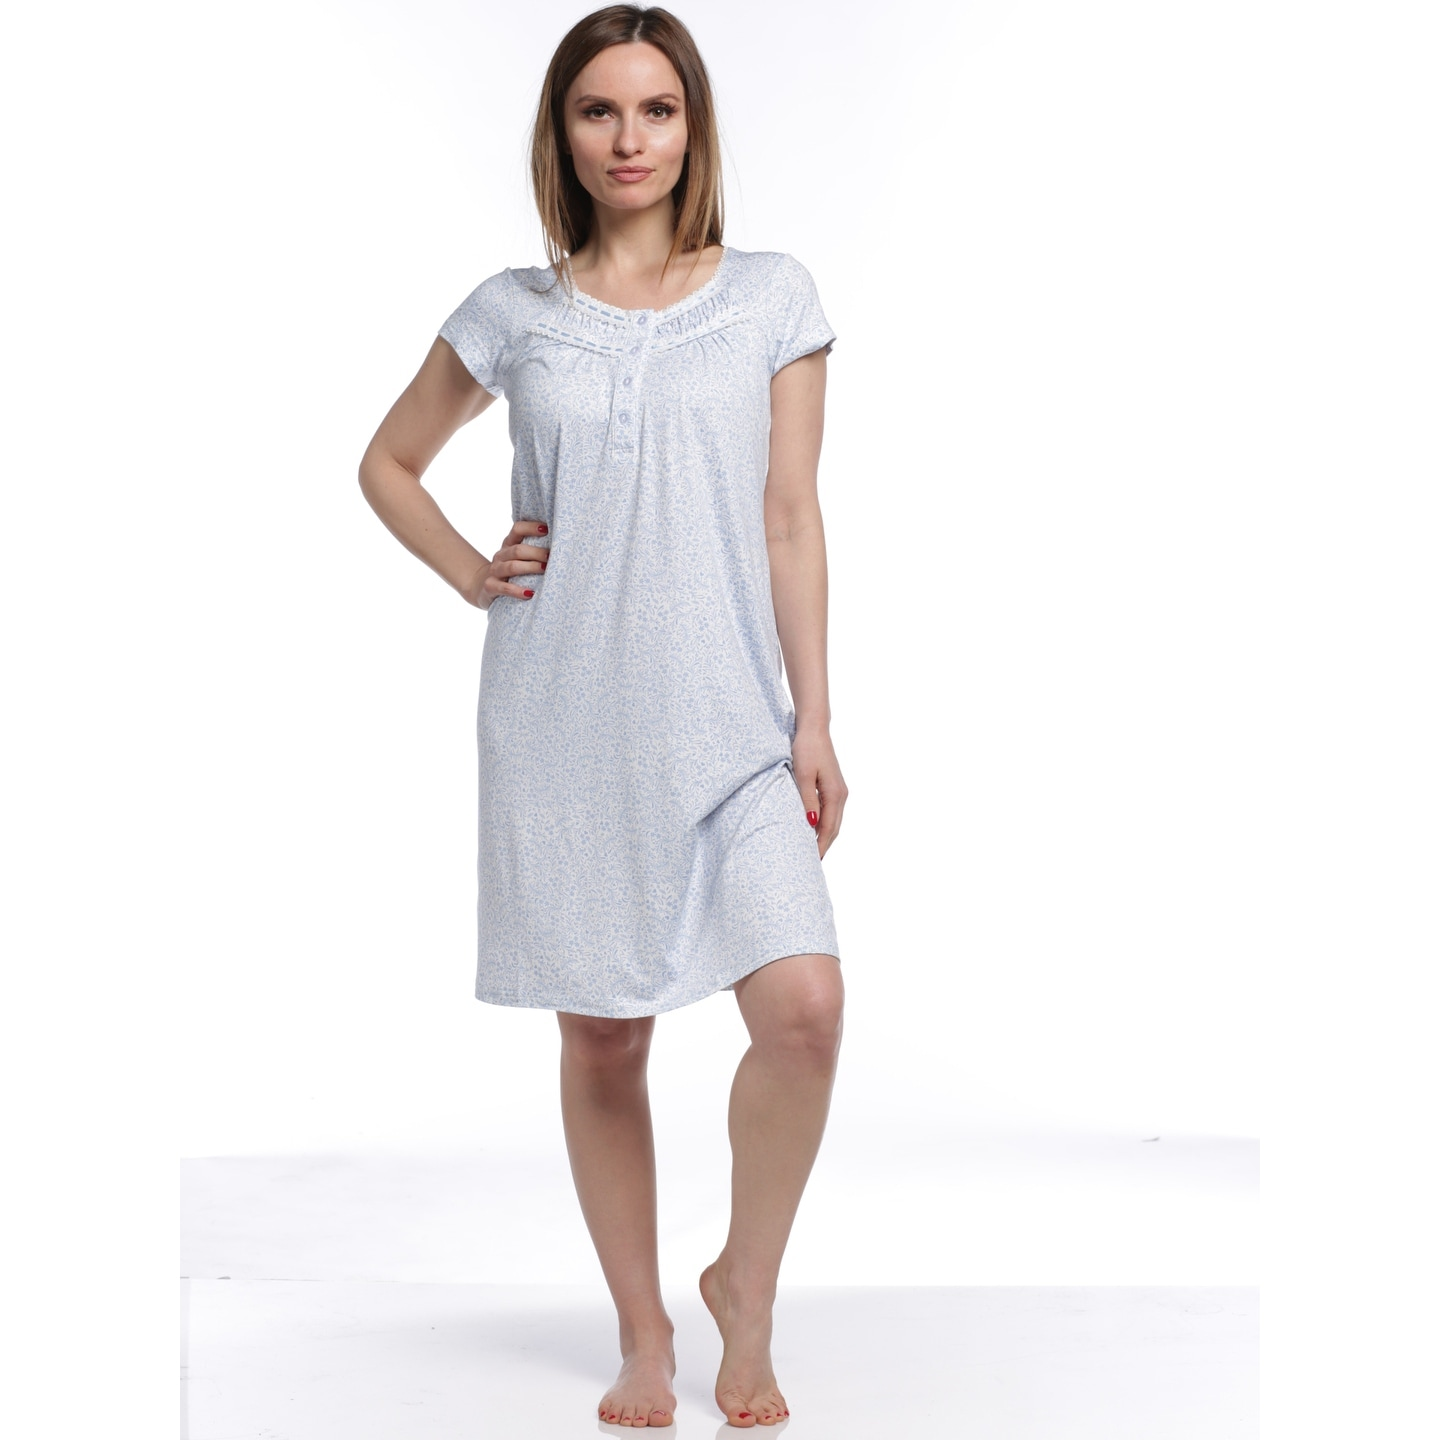 f1f015900463 Buy Nightgowns Pajamas   Robes Online at Overstock